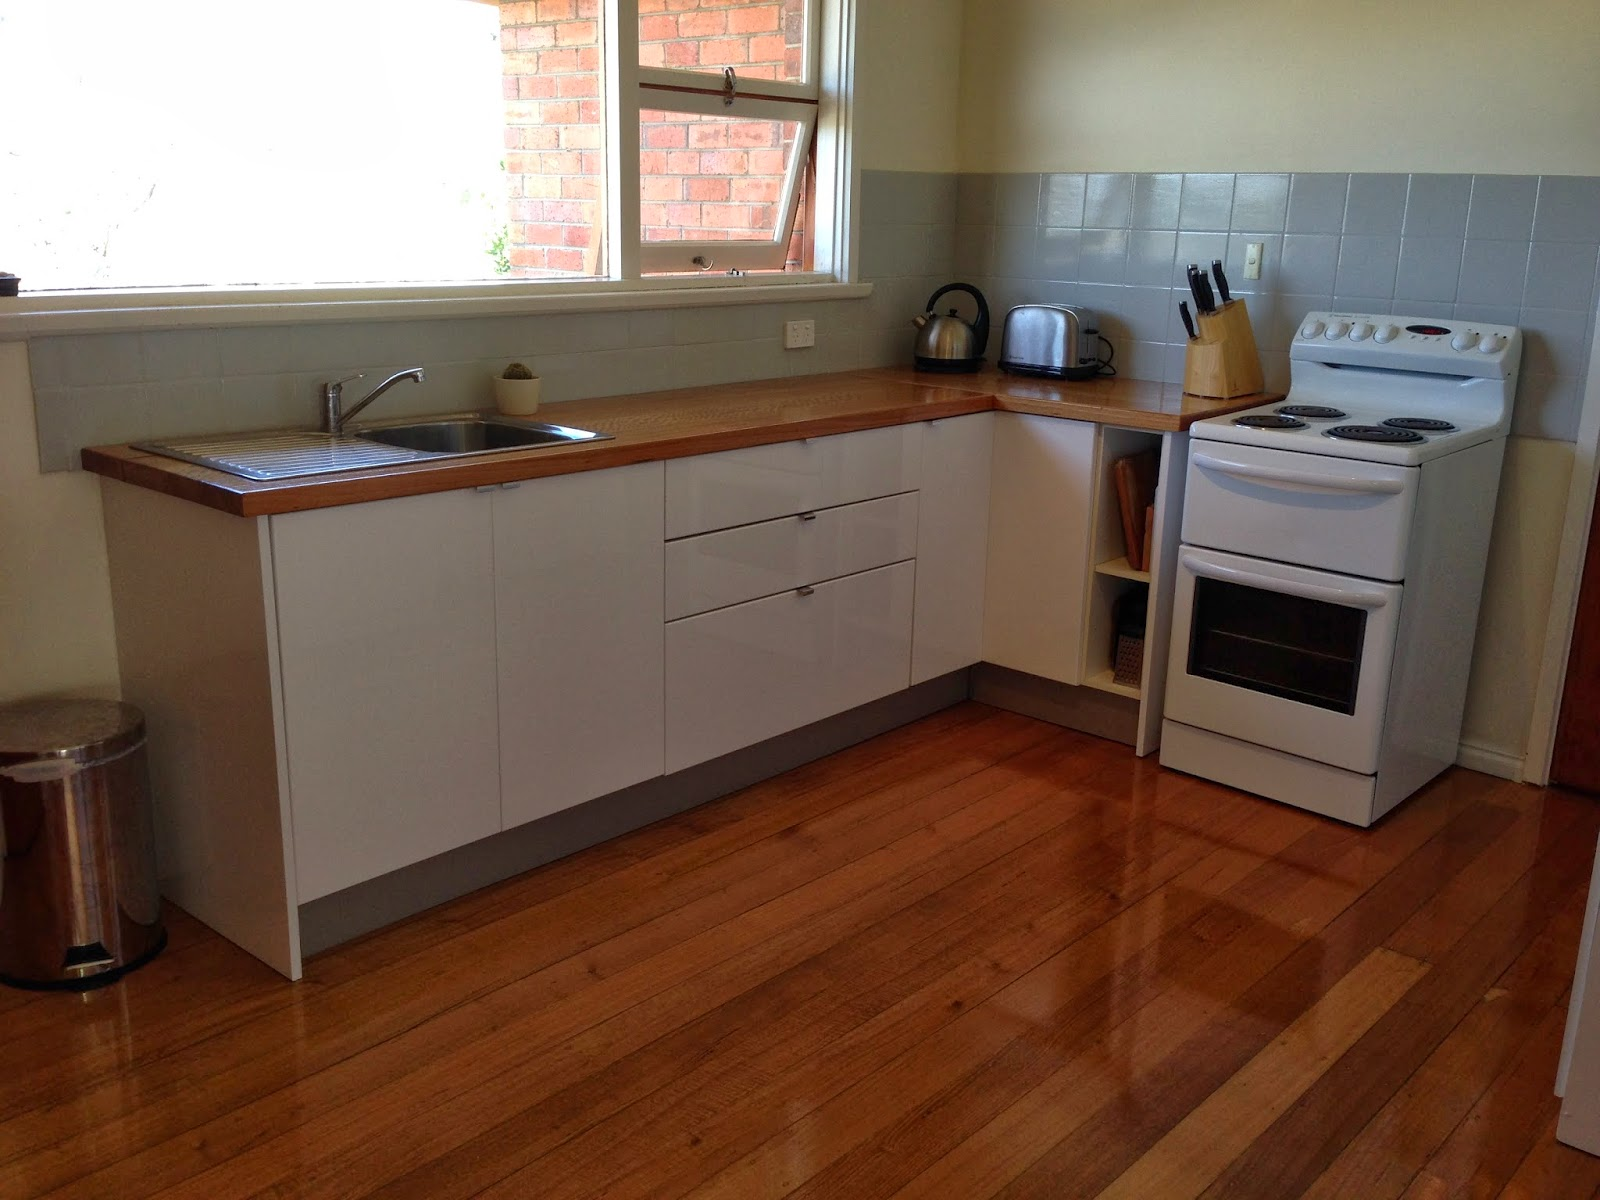 Flat Pack Kitchen Cupboards Hello From Tassie The Last Instalment To The Cheap